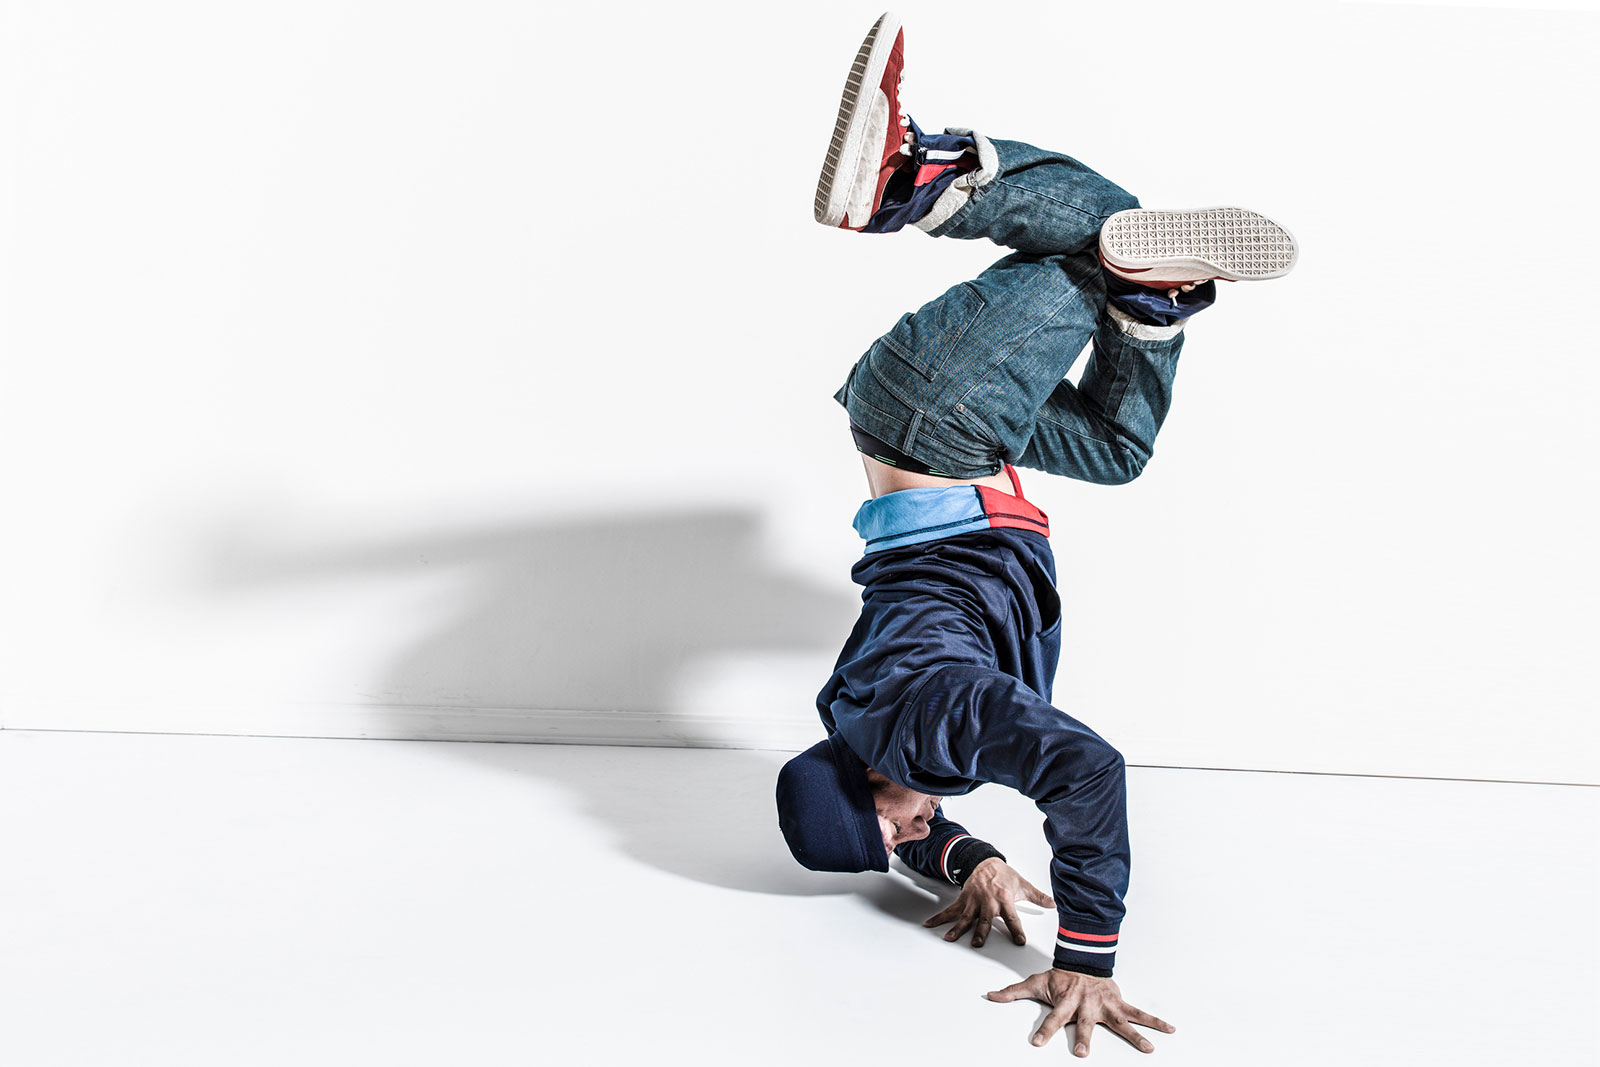 Recommended break dance instruction videos lovetoknow baditri Image collections